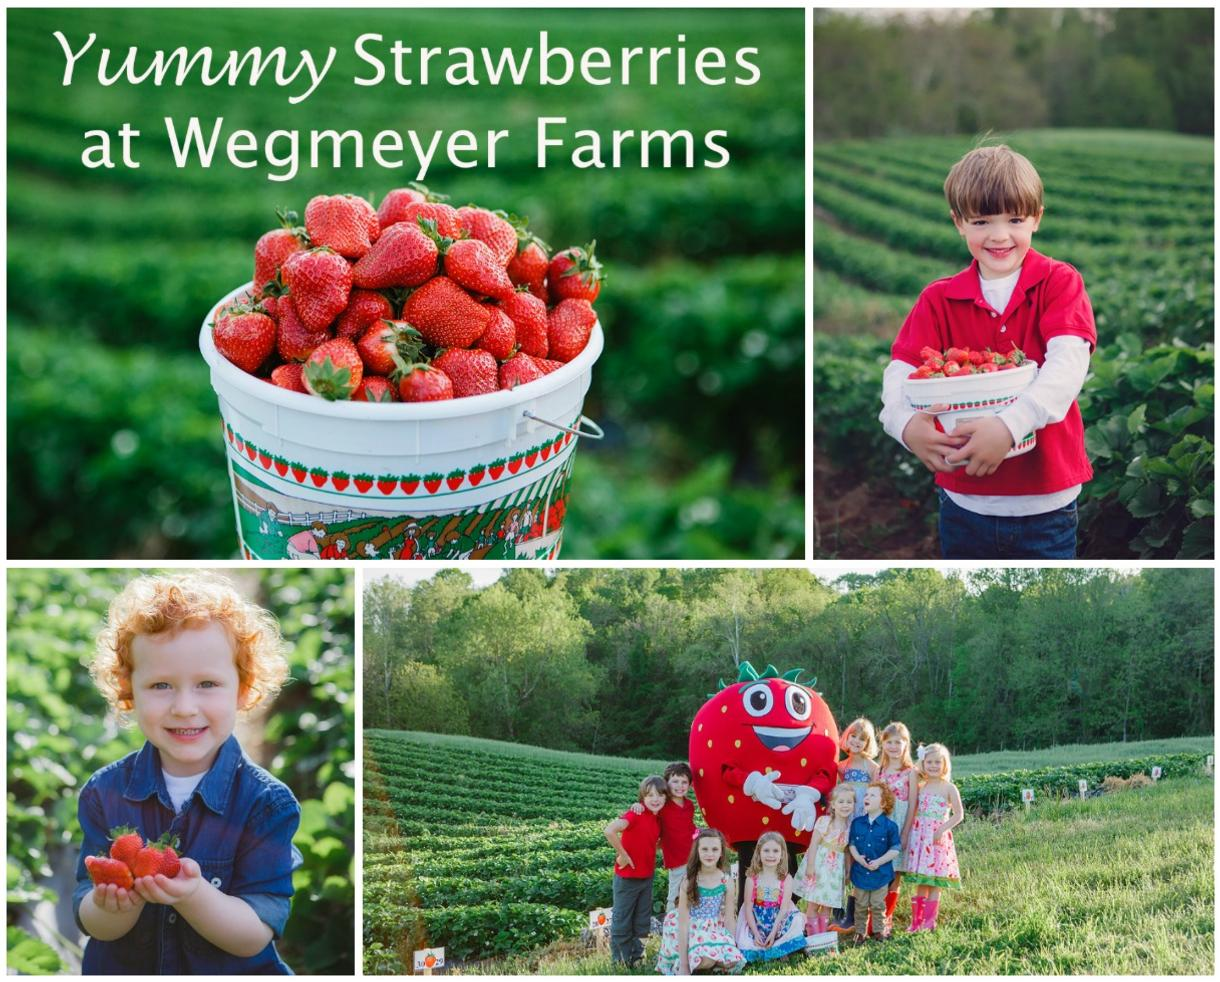 U-Pick Strawberries at Wegmeyer Farms